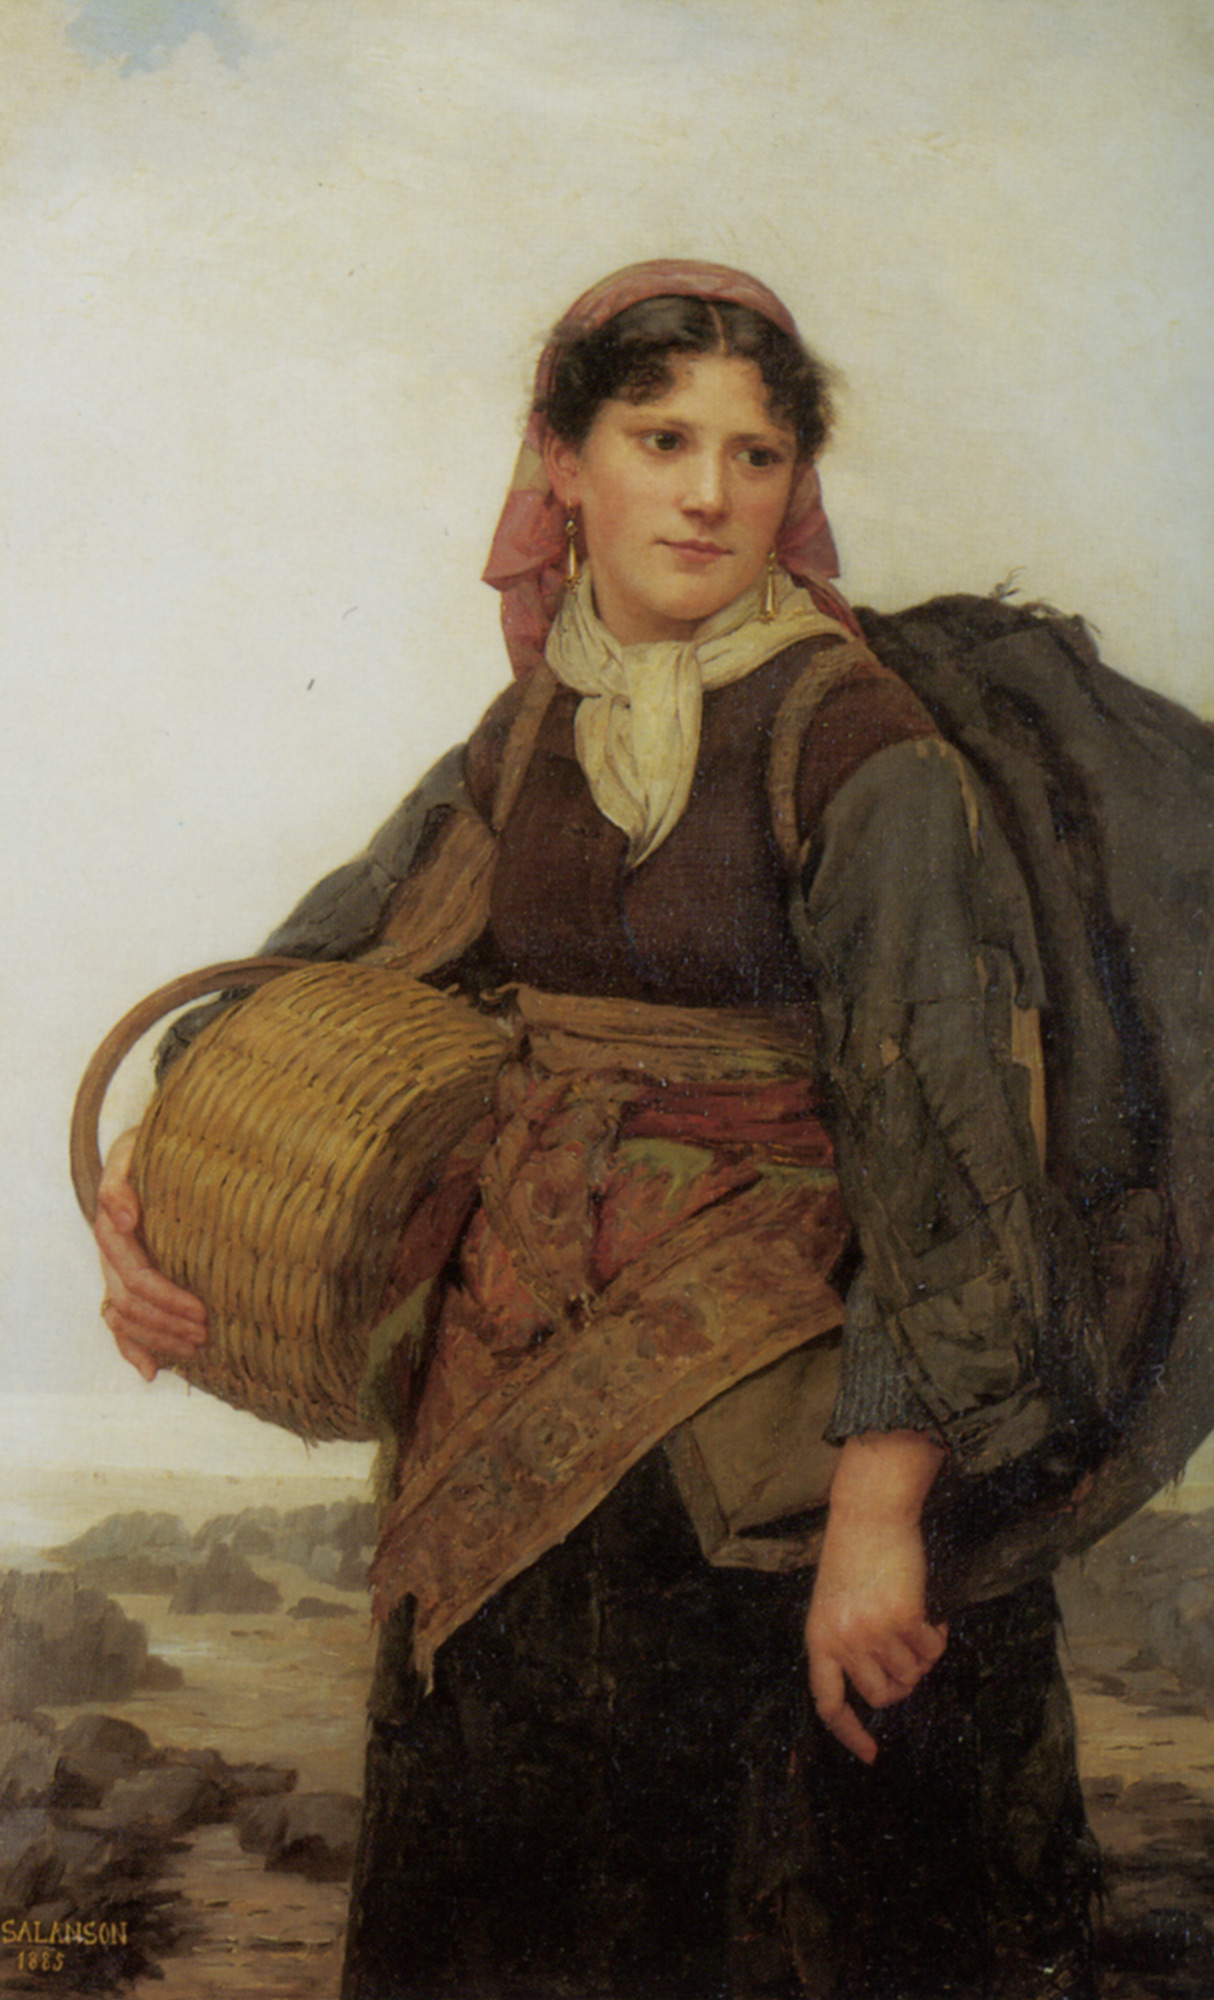 The Fishergirl :: Eugenie Marie Salanson - 7 female portraits ( the end of 19 centuries ) in art and painting ôîòî